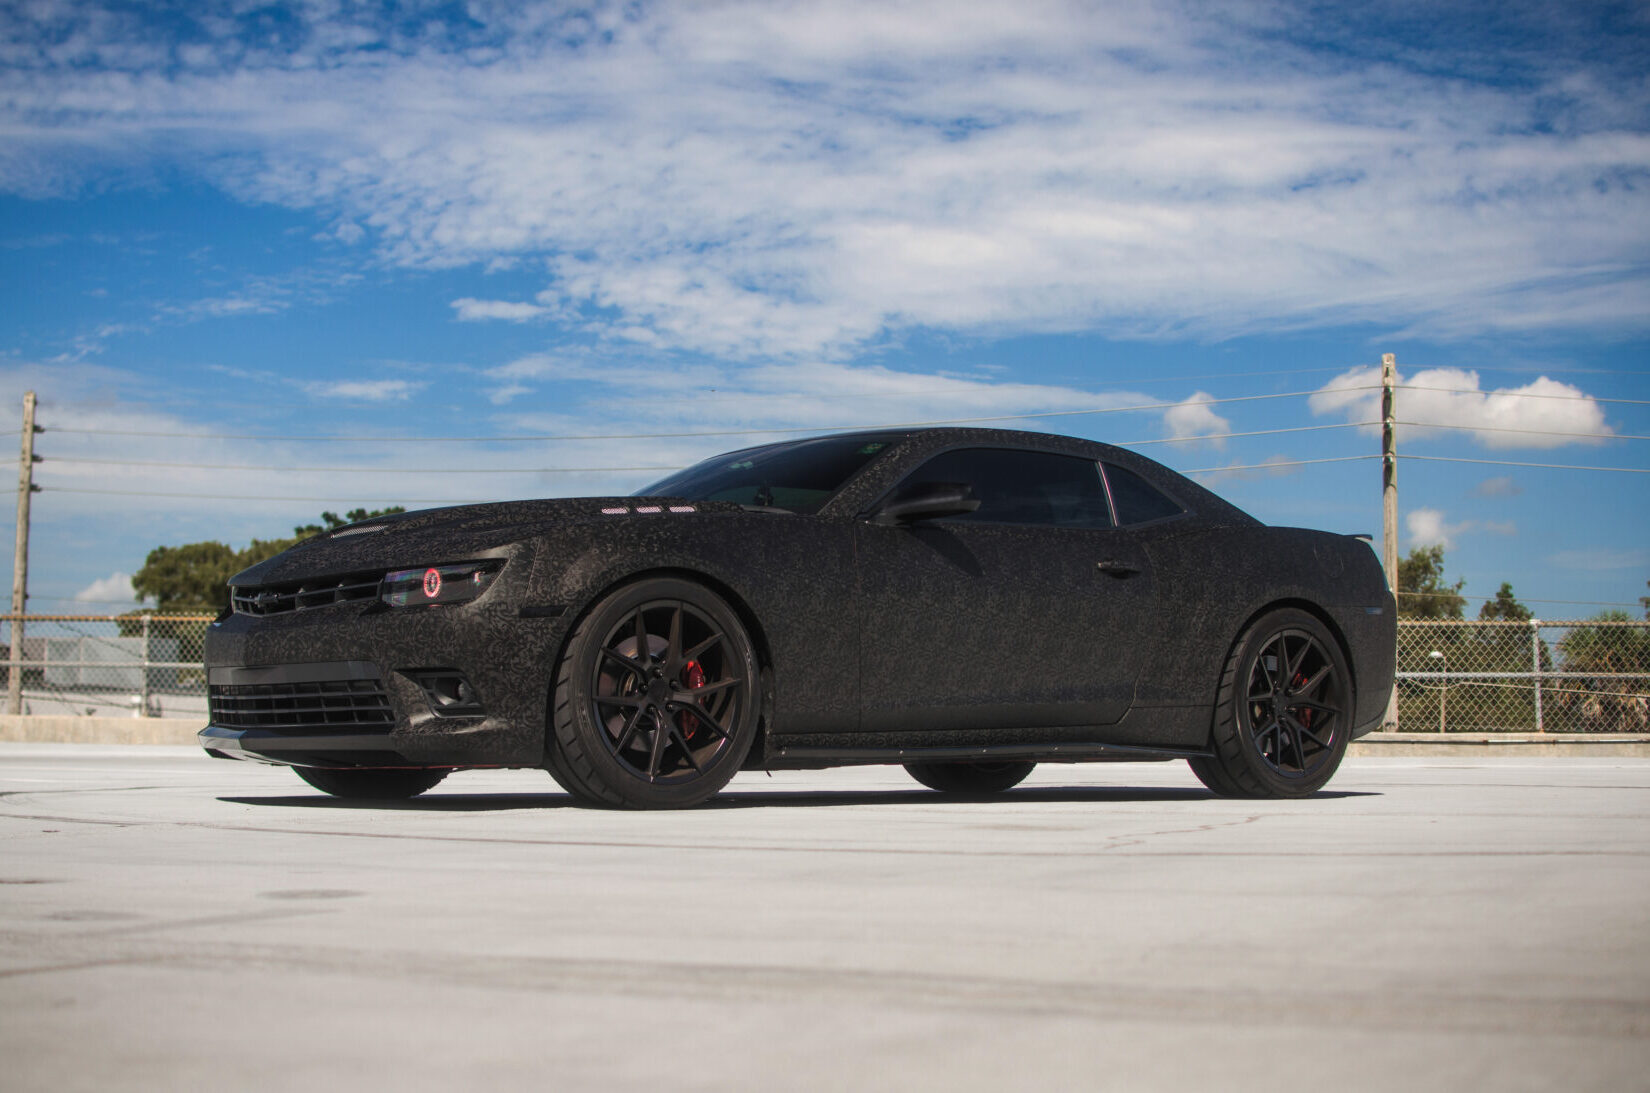 Carwrap chevorolet camaro i 3M 1080 Shadow Black